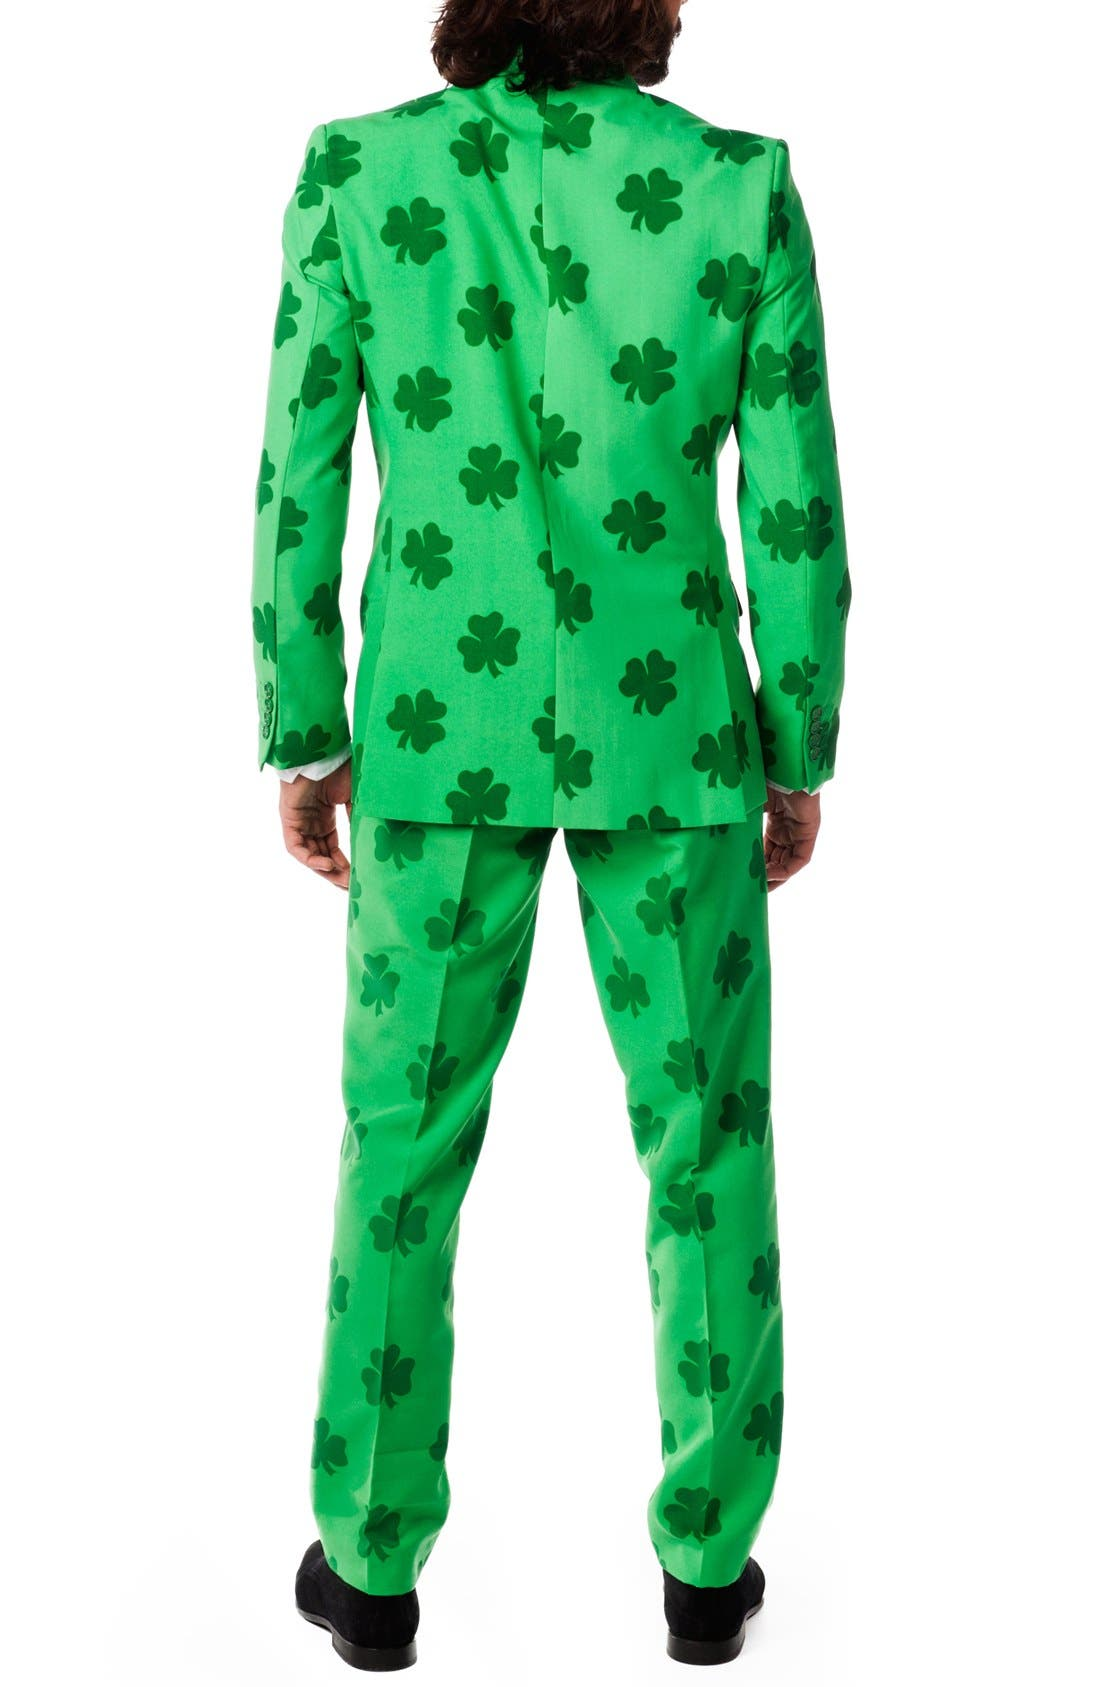 'Patrick' Trim Fit Two-Piece Suit with Tie,                             Alternate thumbnail 2, color,                             Green